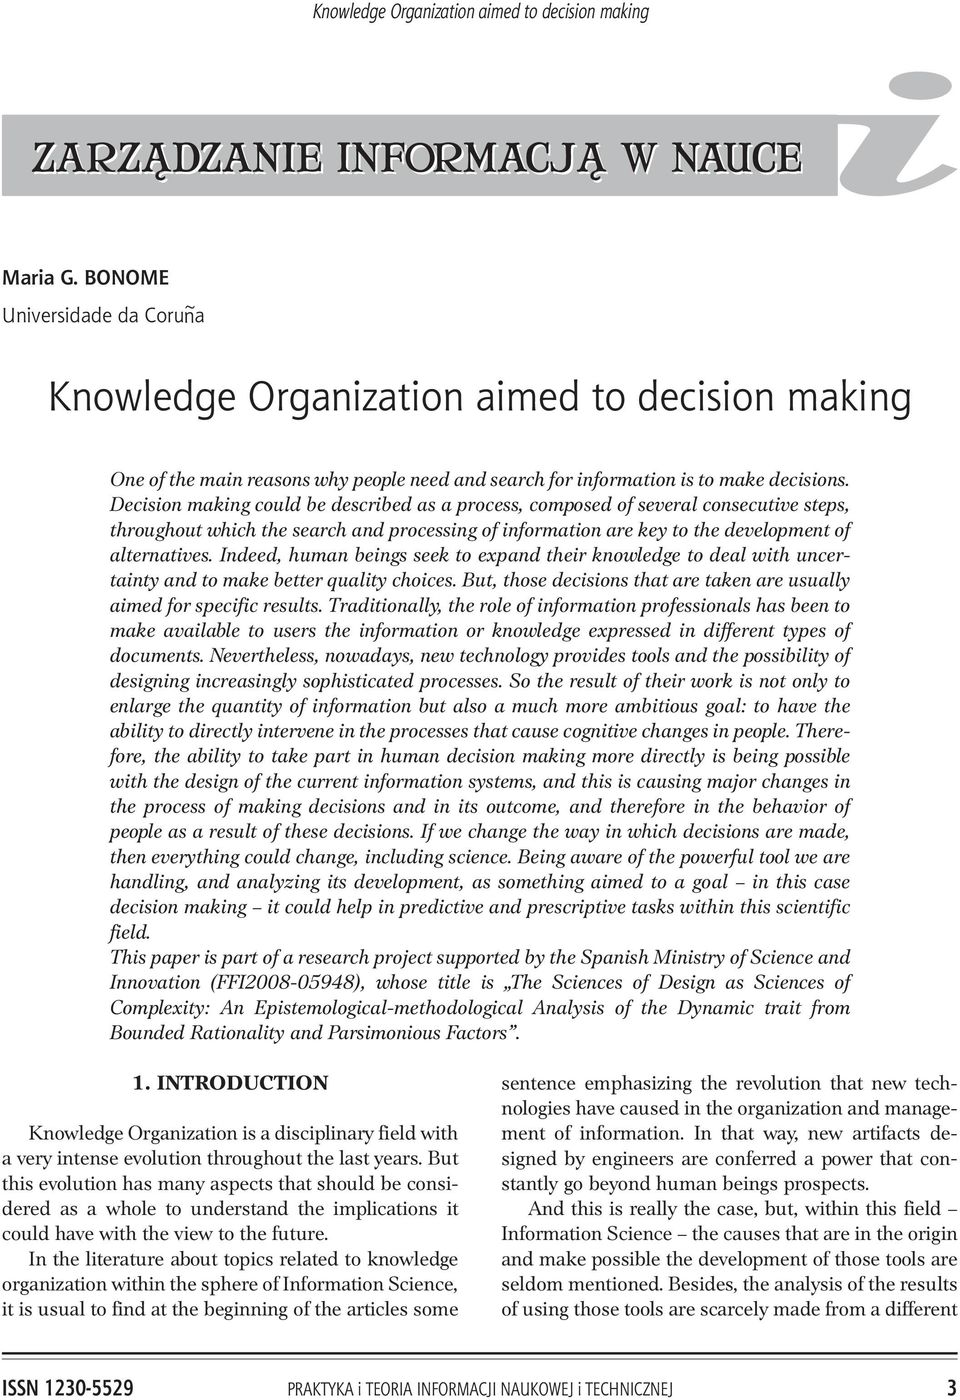 Decision making could be described as a process, composed of several consecutive steps, throughout which the search and processing of information are key to the development of alternatives.